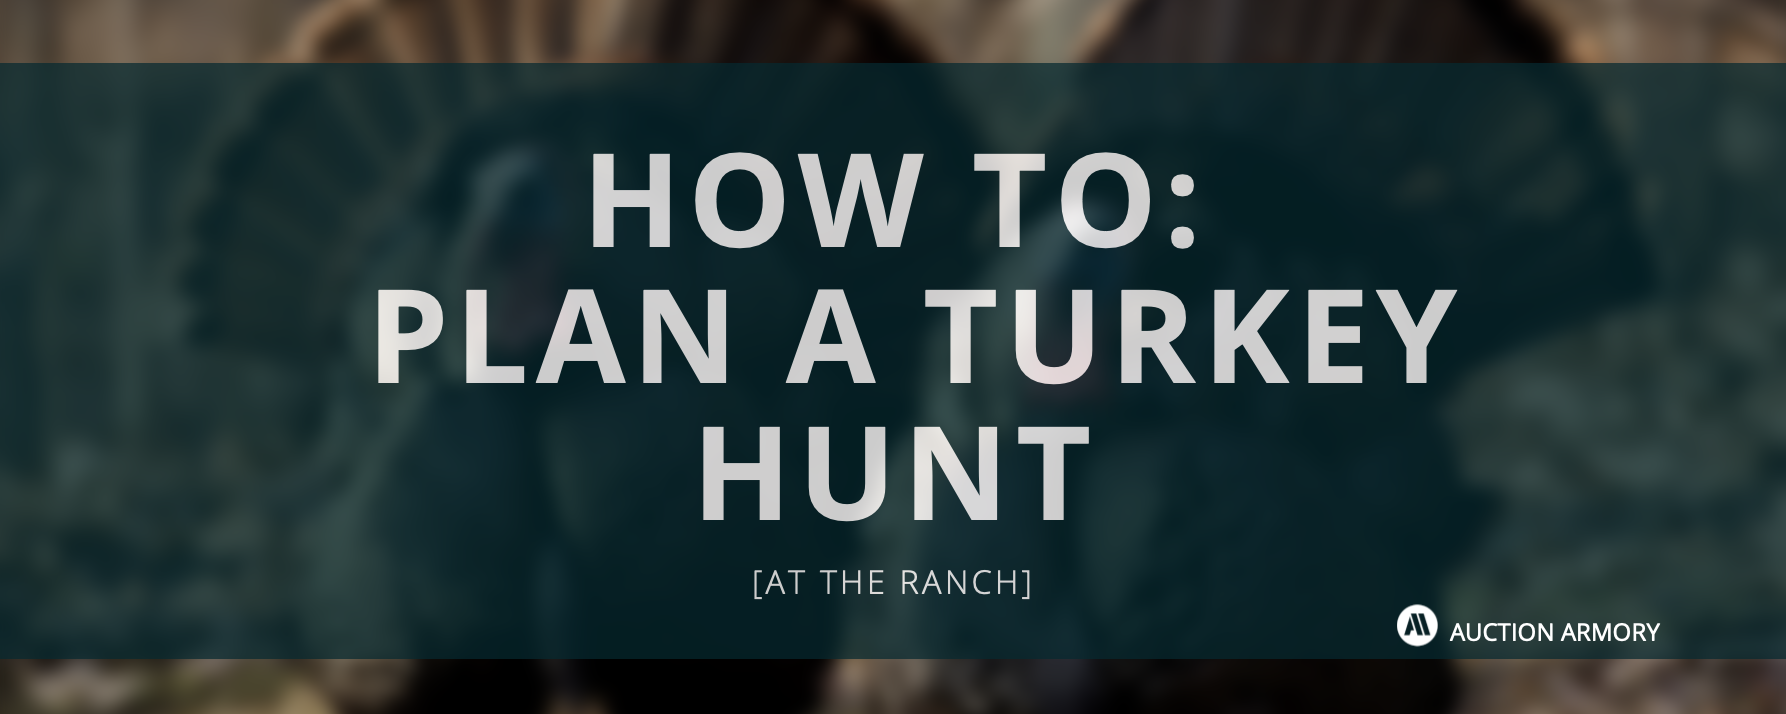 At the Ranch: How to Plan a Turkey Hunt